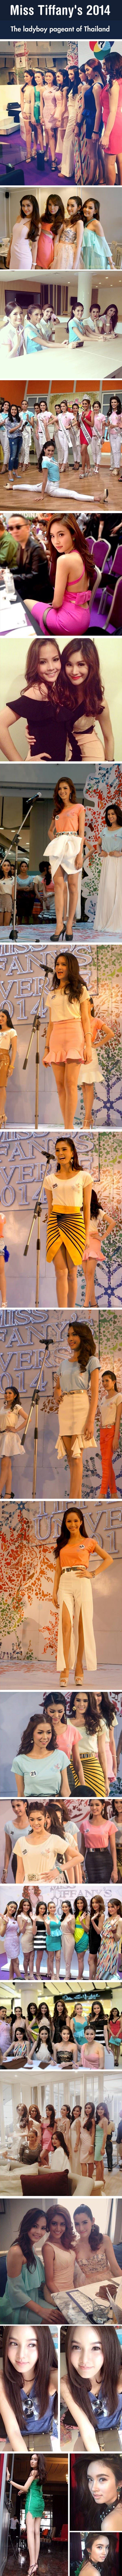 ladyboy pageant 2014 funny picture